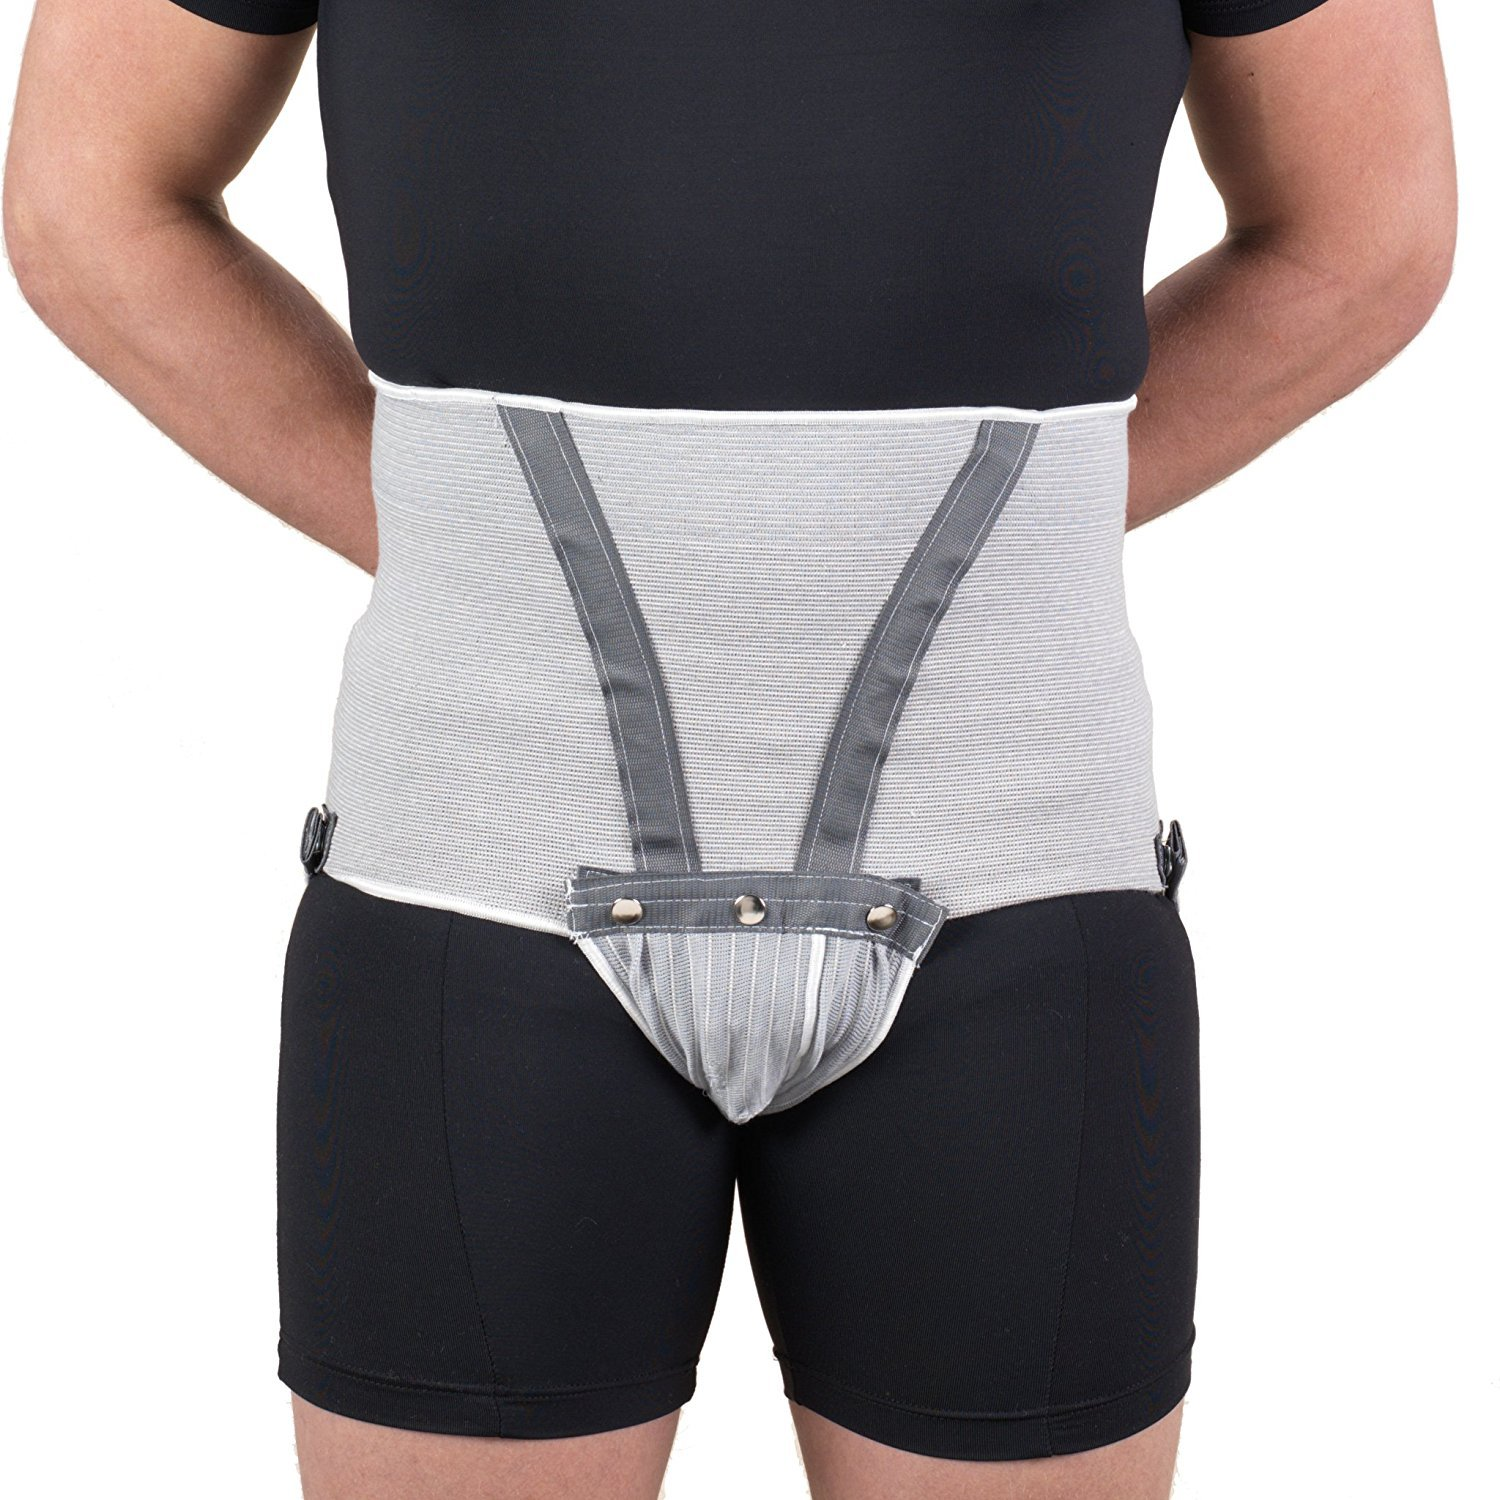 Men's Abdominal Supporter, Detachable Pouch, Professional Medical Style, X-Small (27-30 inch waist)